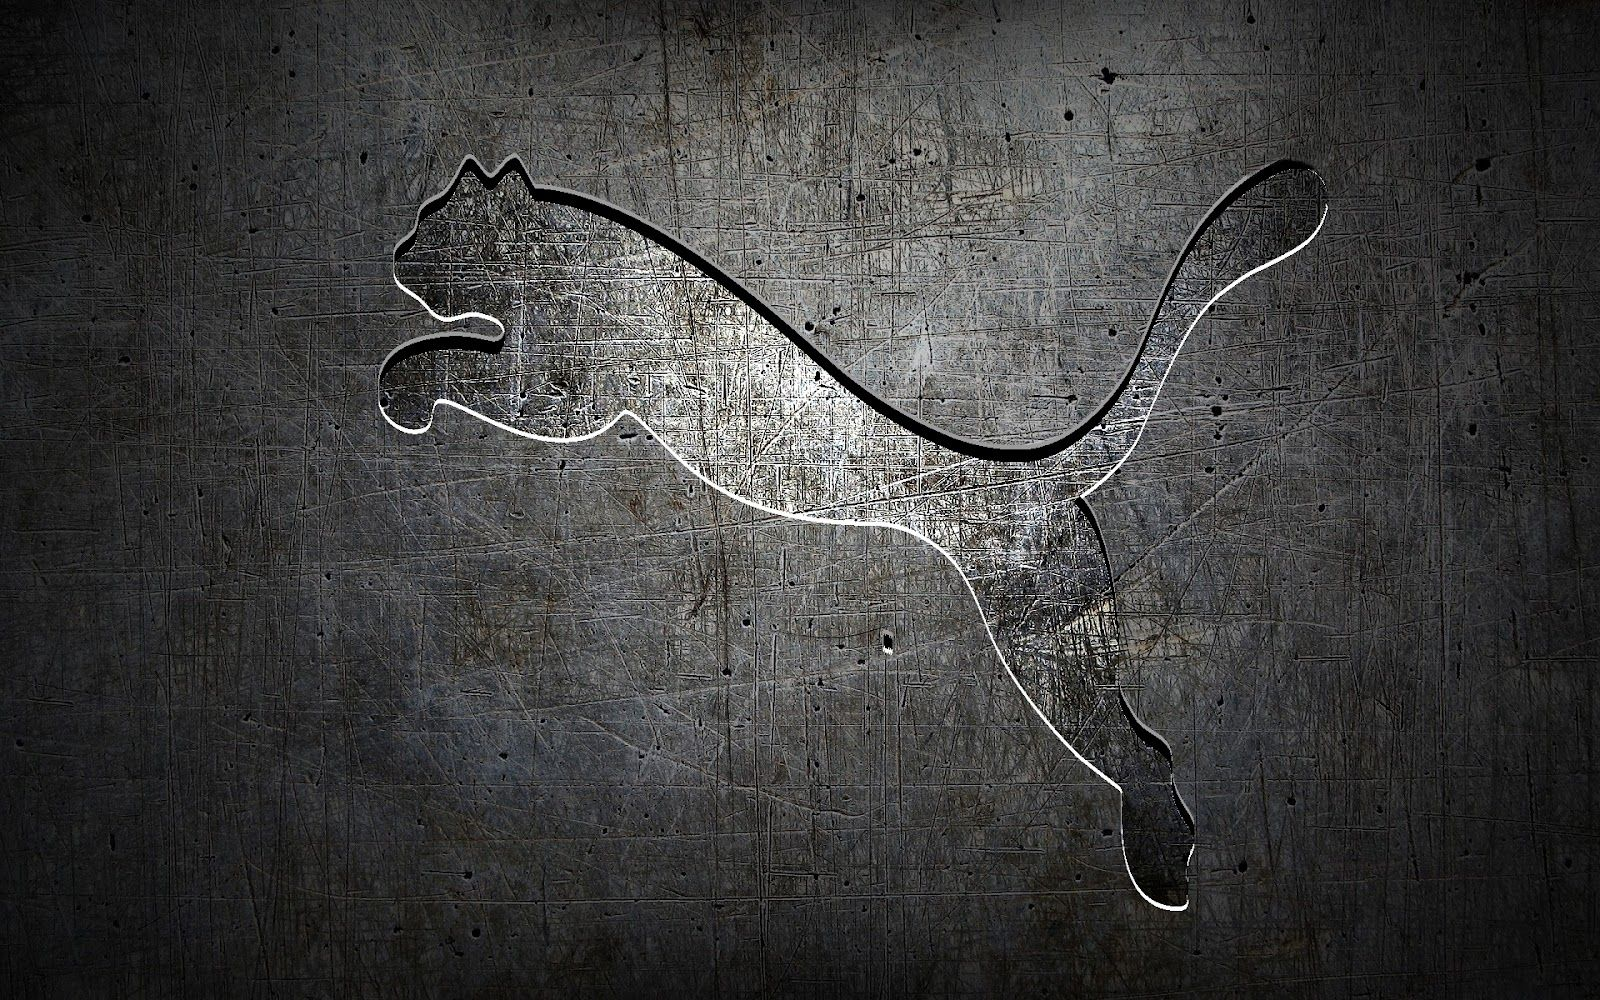 Puma Wallpapers, Desktop 4K HD Photos, GuoGuiyan.com